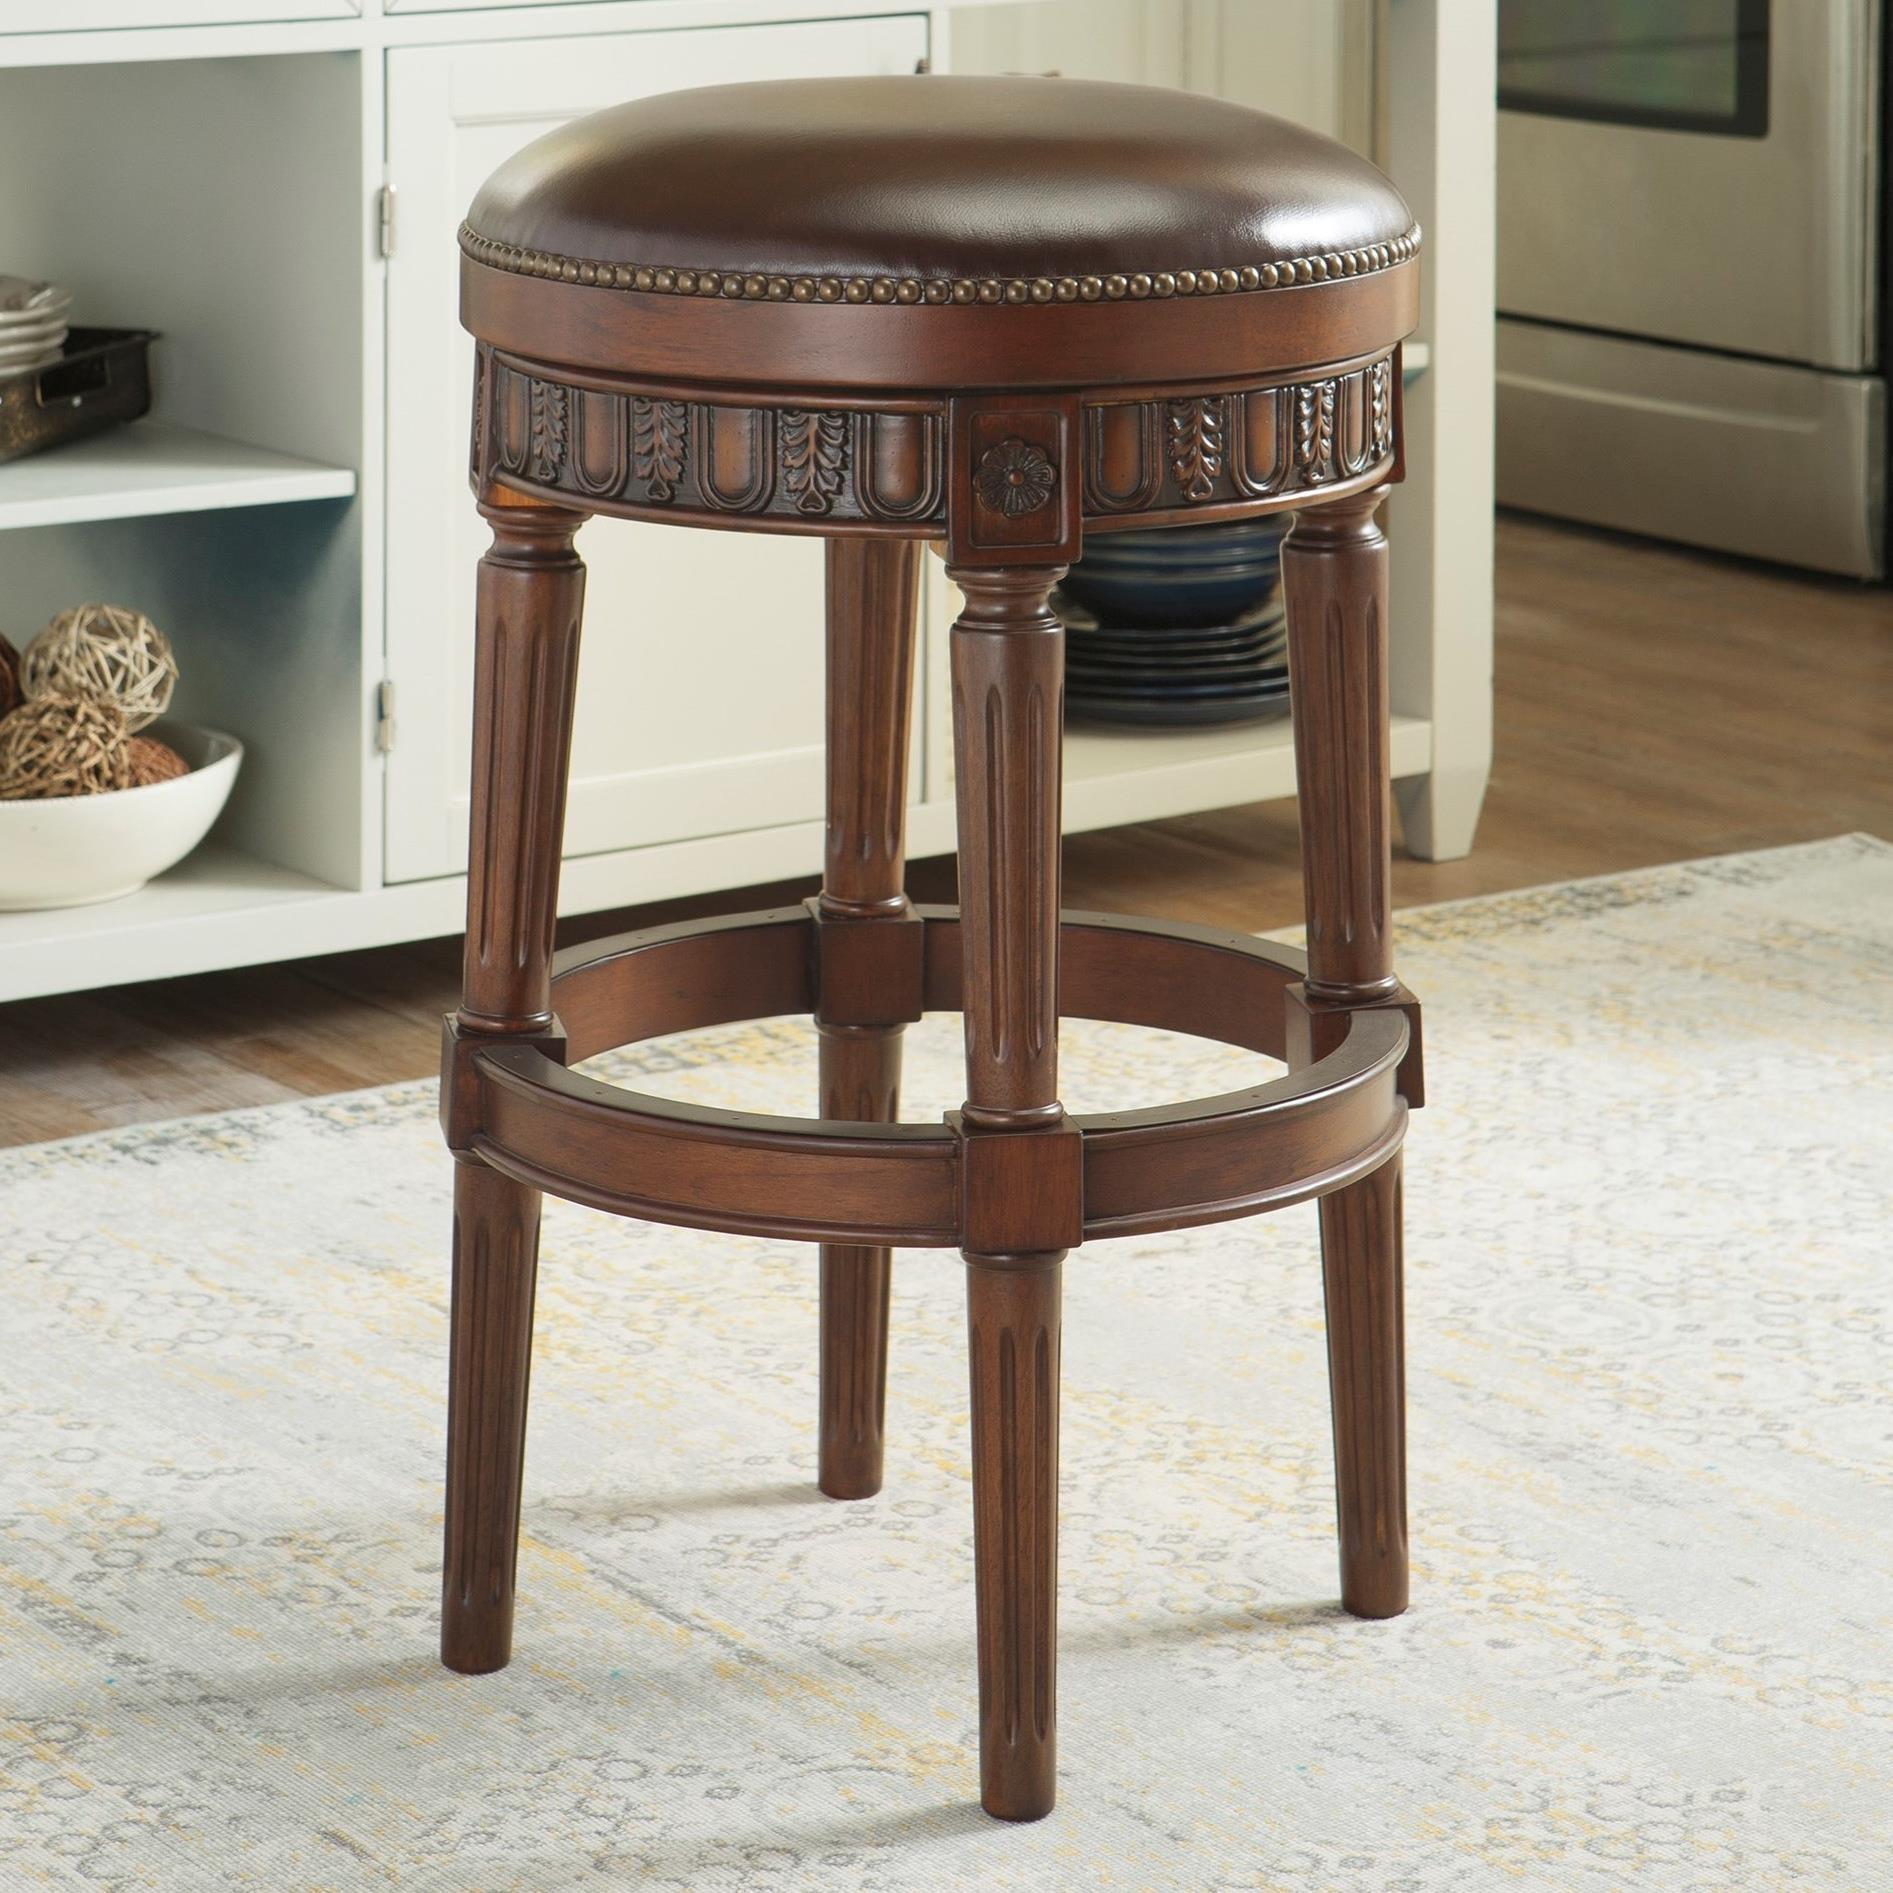 Millennium North Shore Tall Upholstered Swivel Stool - Item Number: D553-030